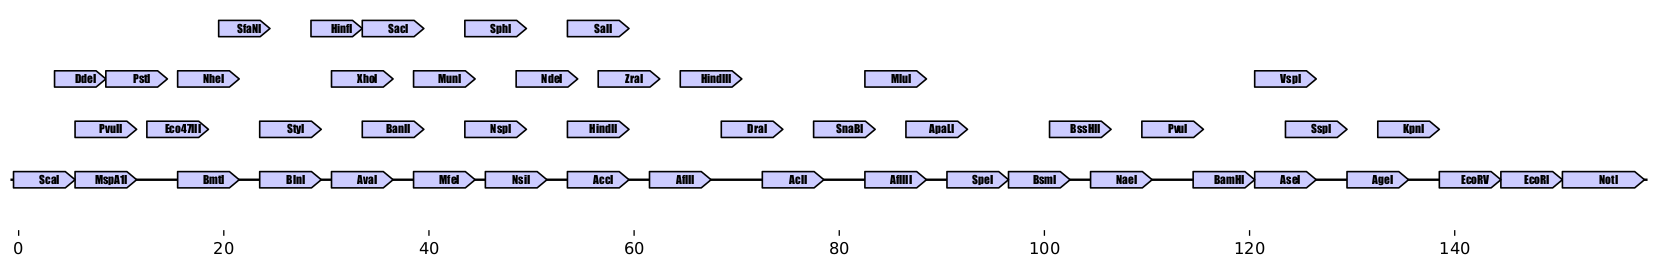 https://raw.githubusercontent.com/Edinburgh-Genome-Foundry/zymp/master/docs/_static/images/example_array.png